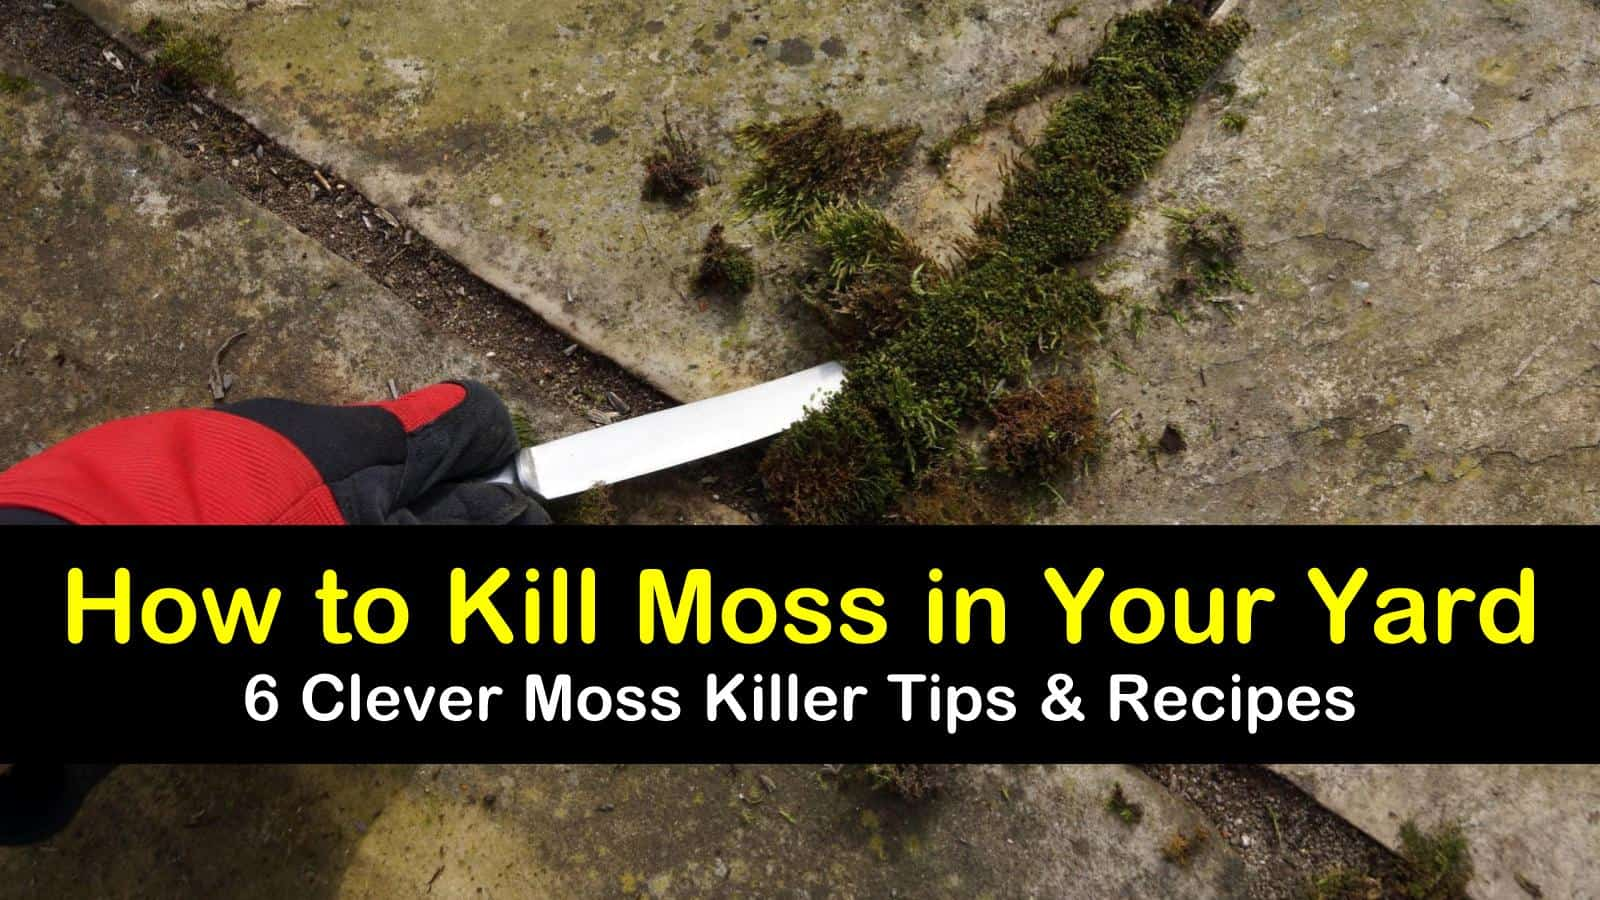 how to kill moss in your yard titleimg1